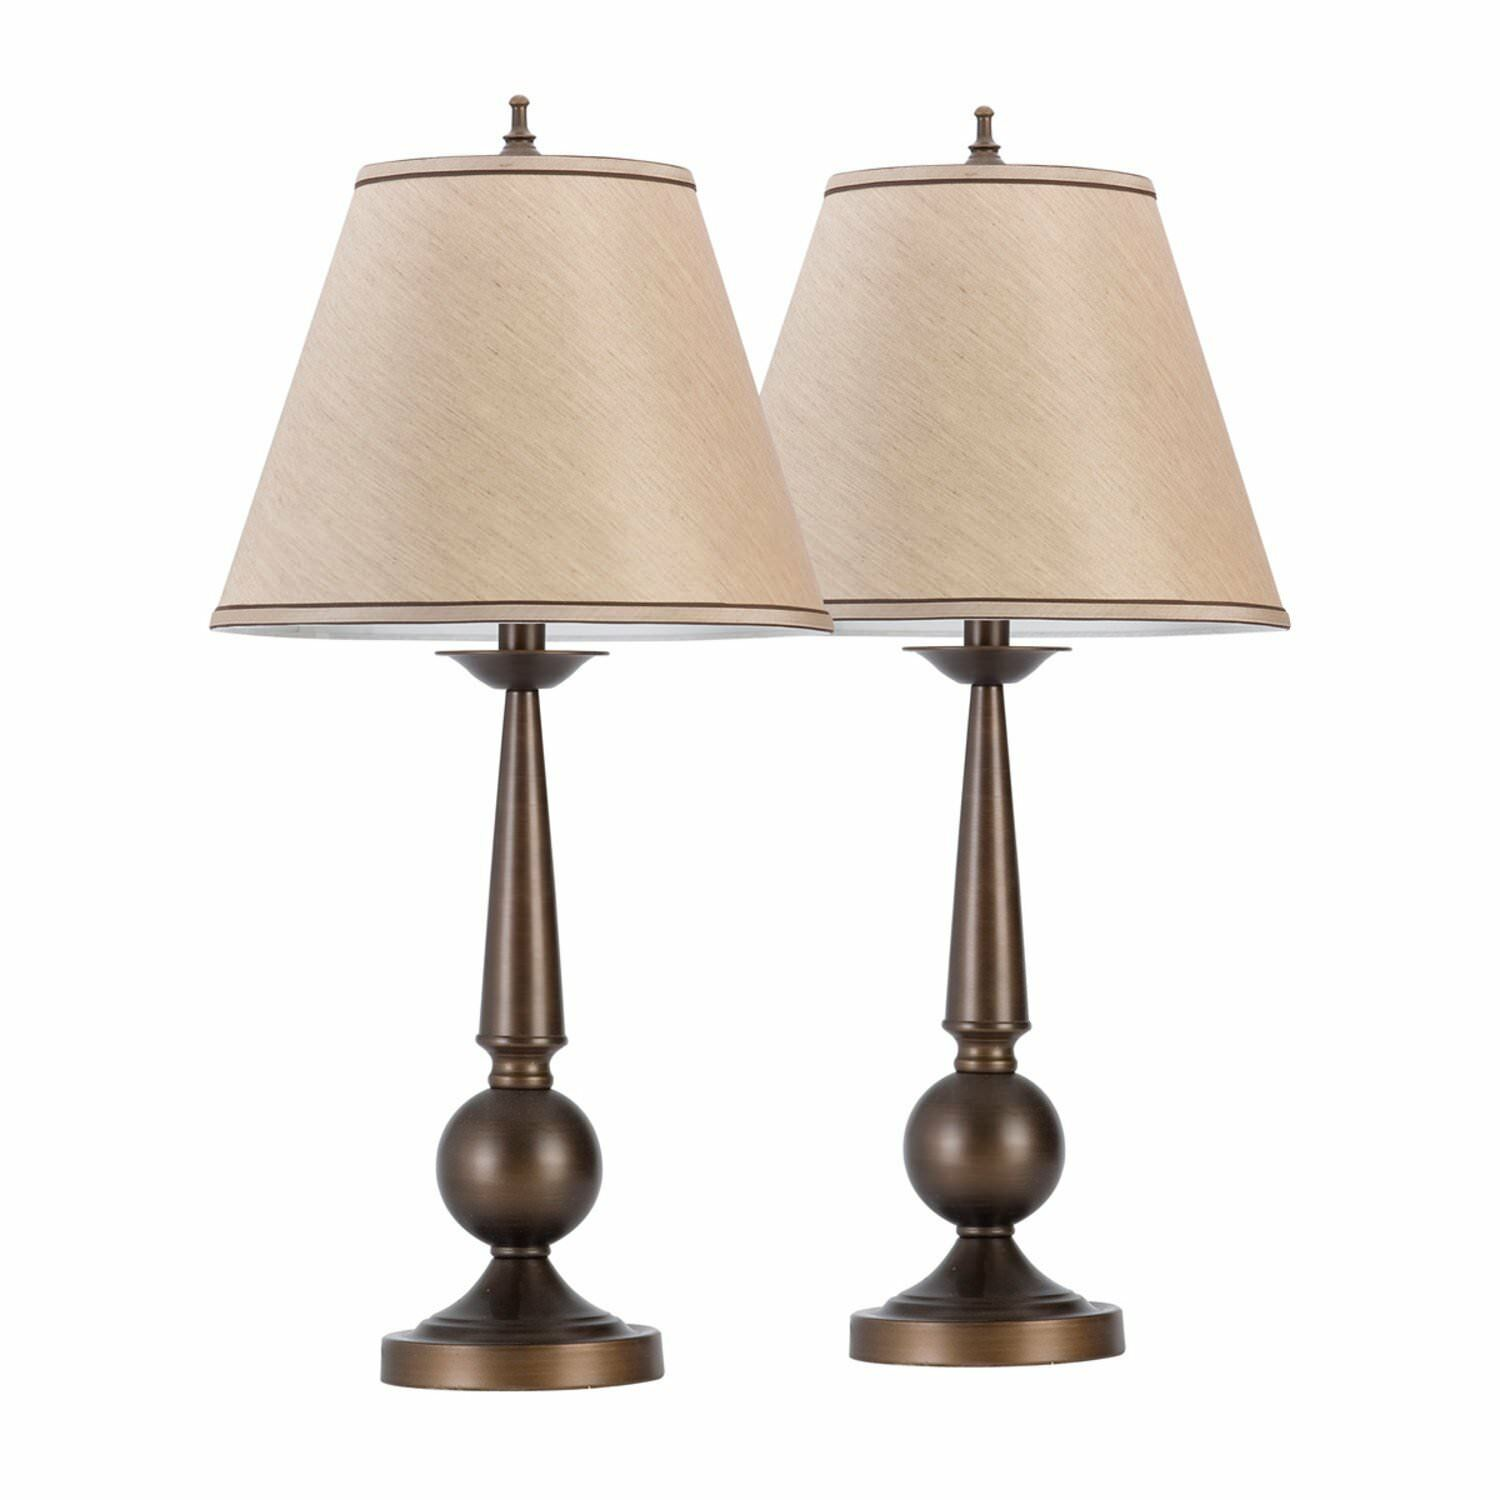 table lamps set beige shades bedroom nightstand decorative accent light available see more slate coffee pearl drum stool waterproof cover for garden and chairs umbrella stand foot